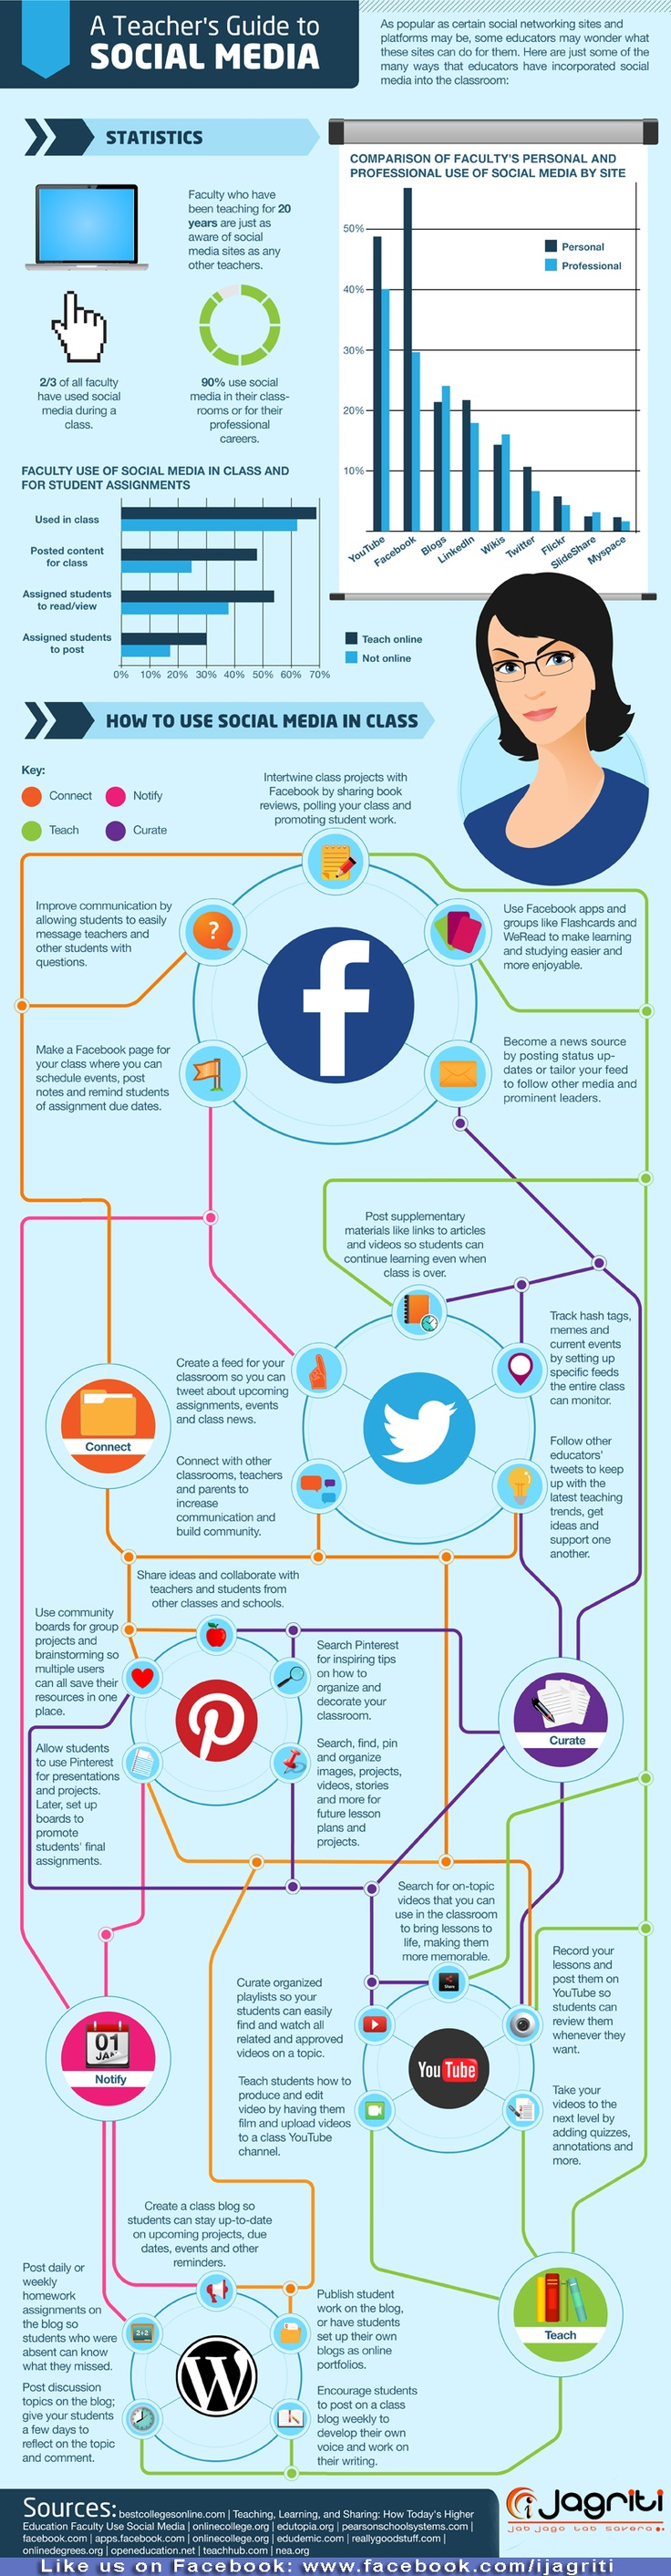 58 best Policy images on Pinterest | Info graphics, Eat healthy and ...